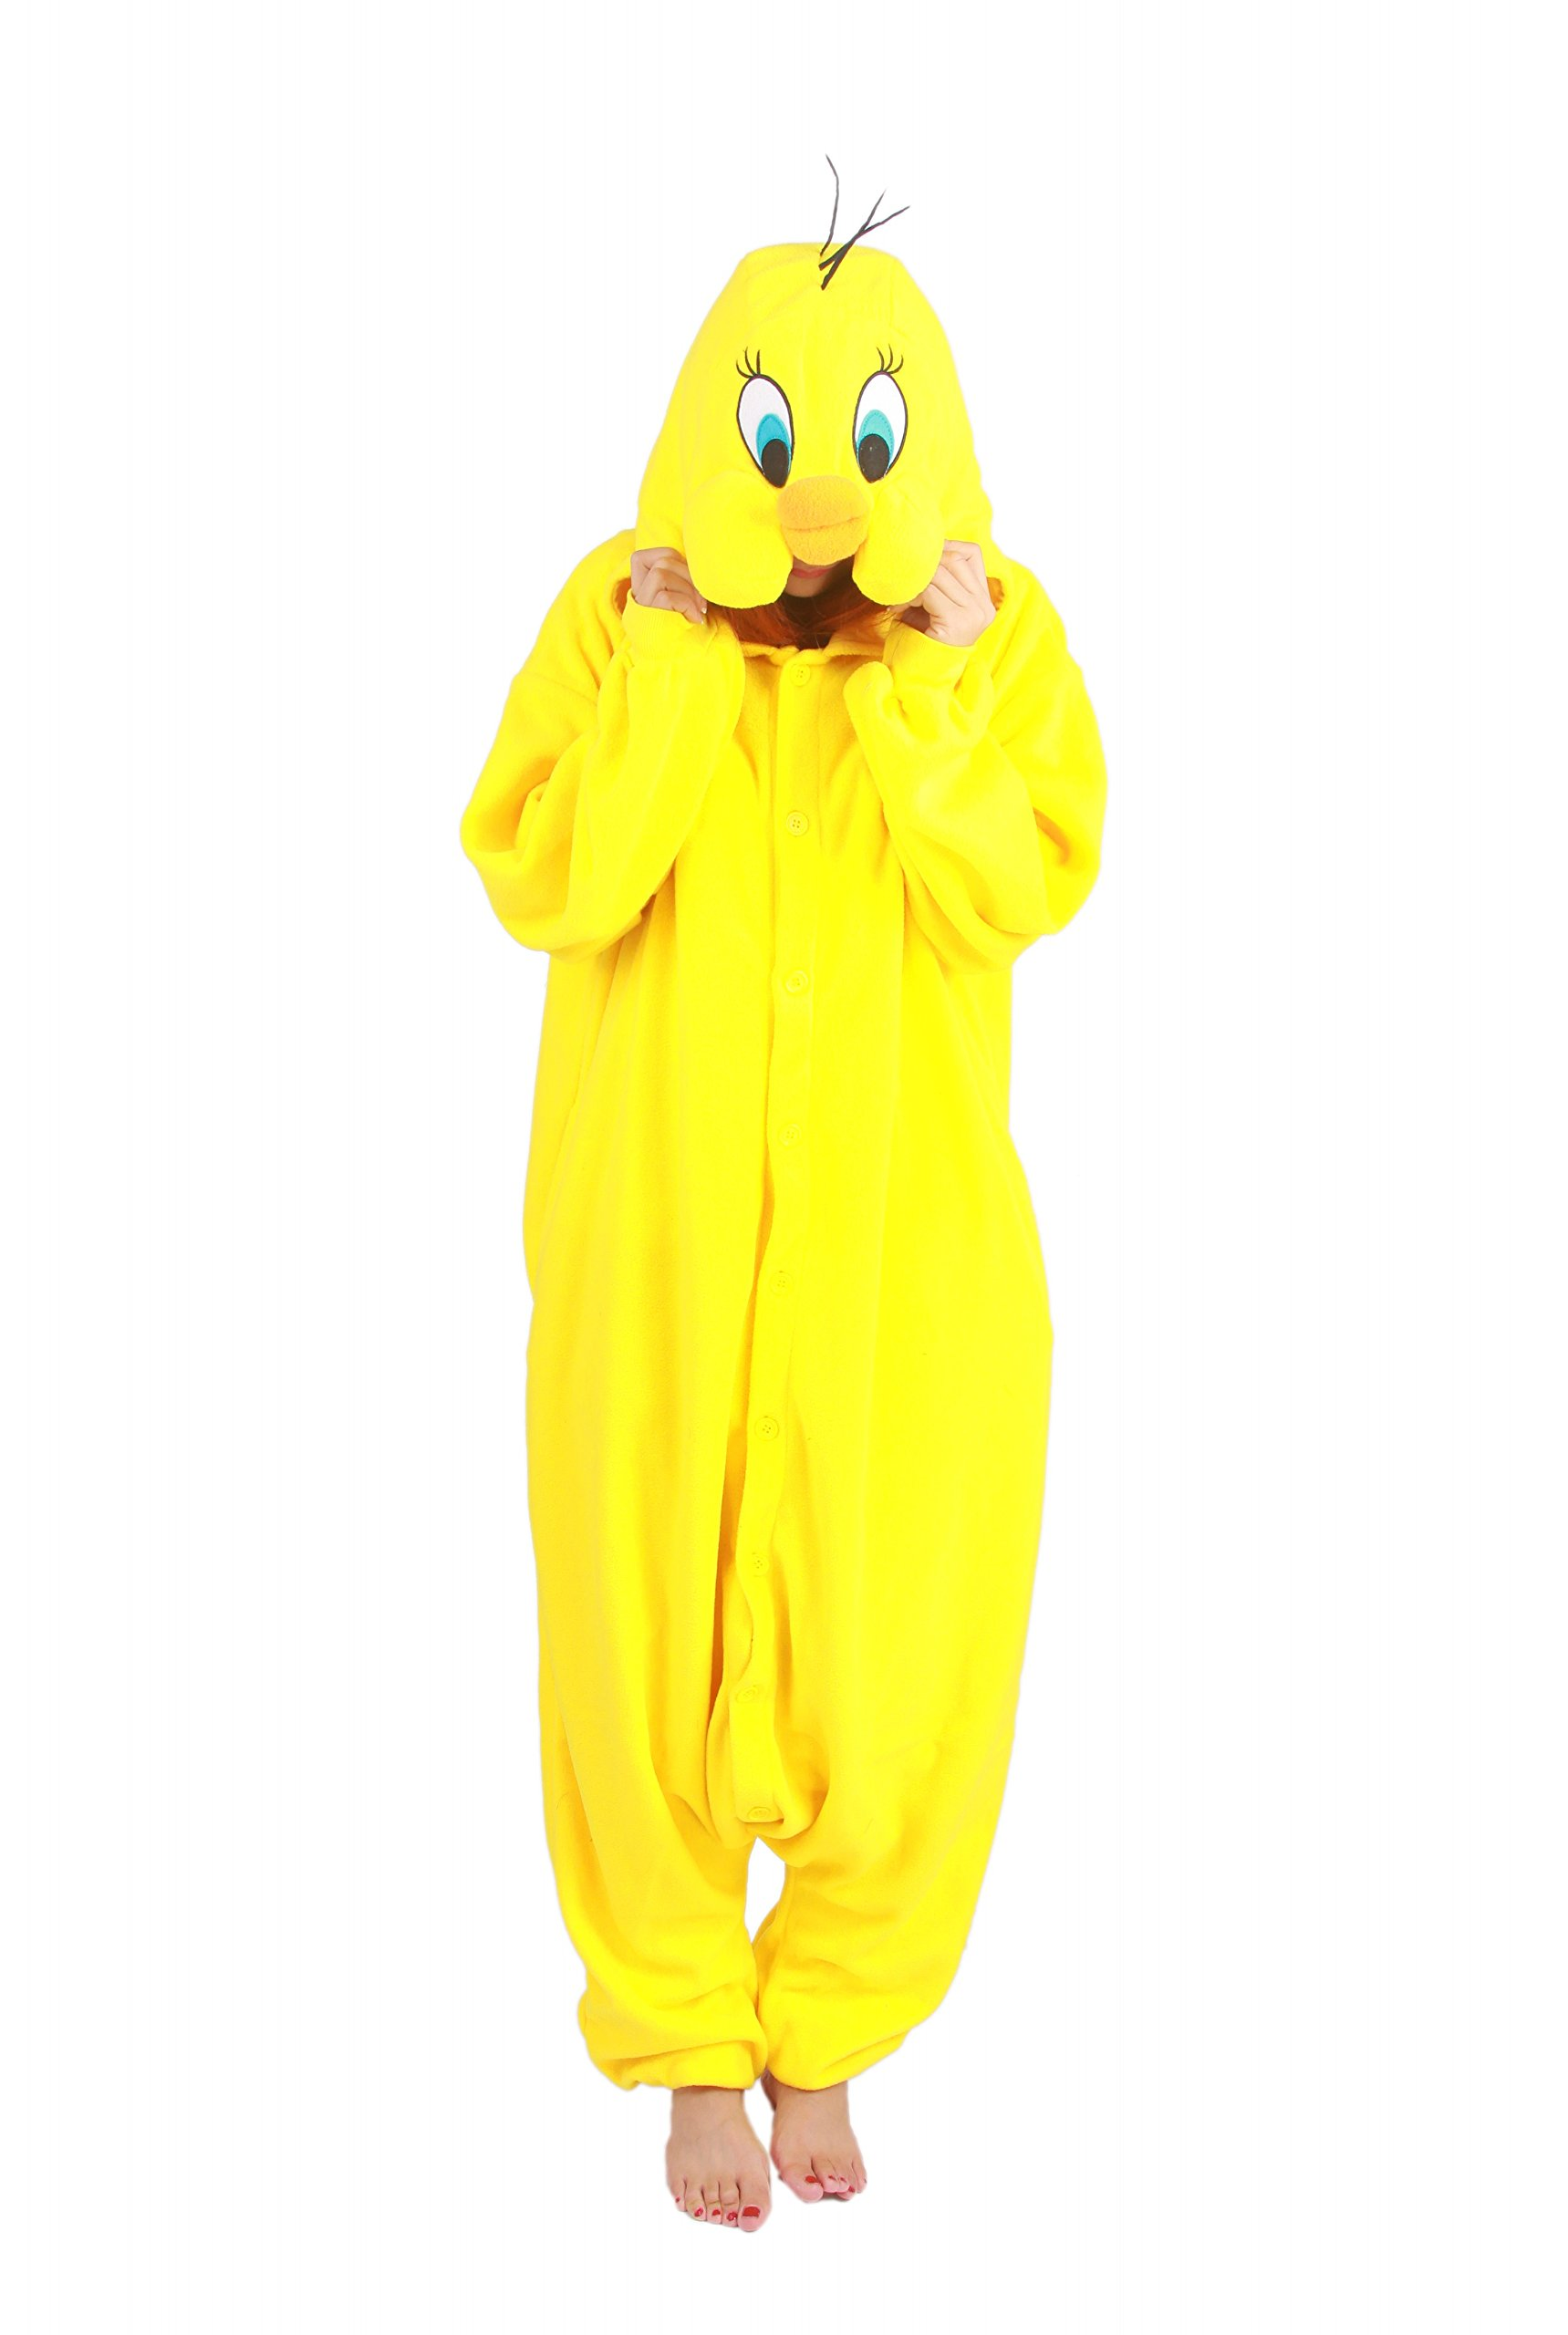 XMiniLife(TM)Animal Pajamas Cosplay Halloween Costume Tweety Bird Kigu